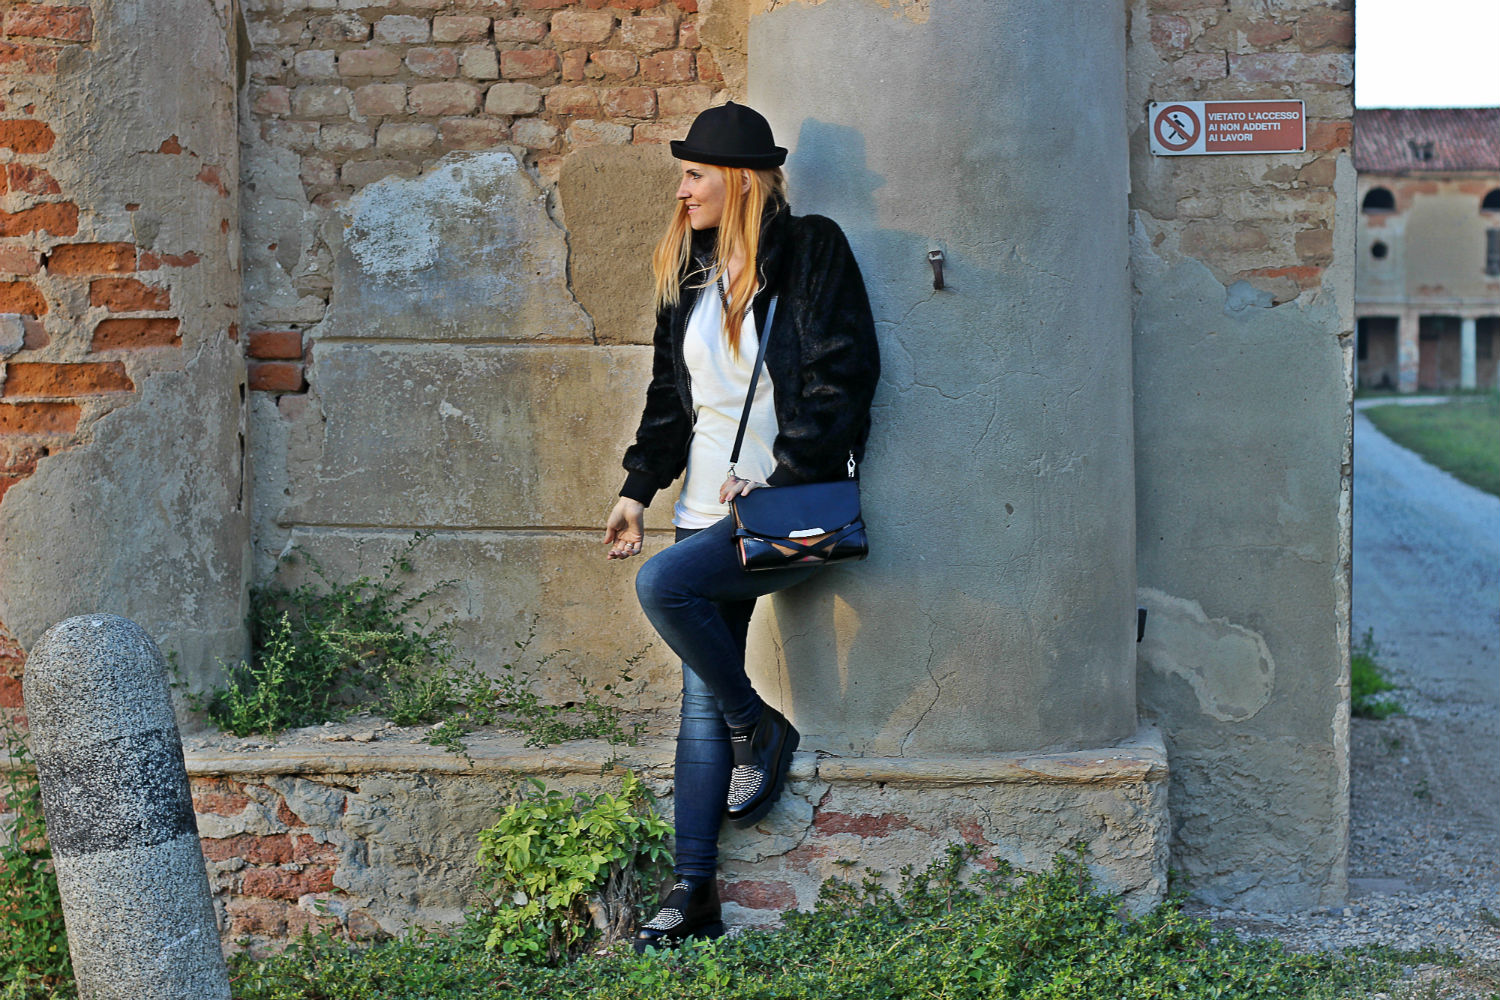 moda donna - platform shoes and denim - look of the day - outfit moda donna autunno - gravidanza